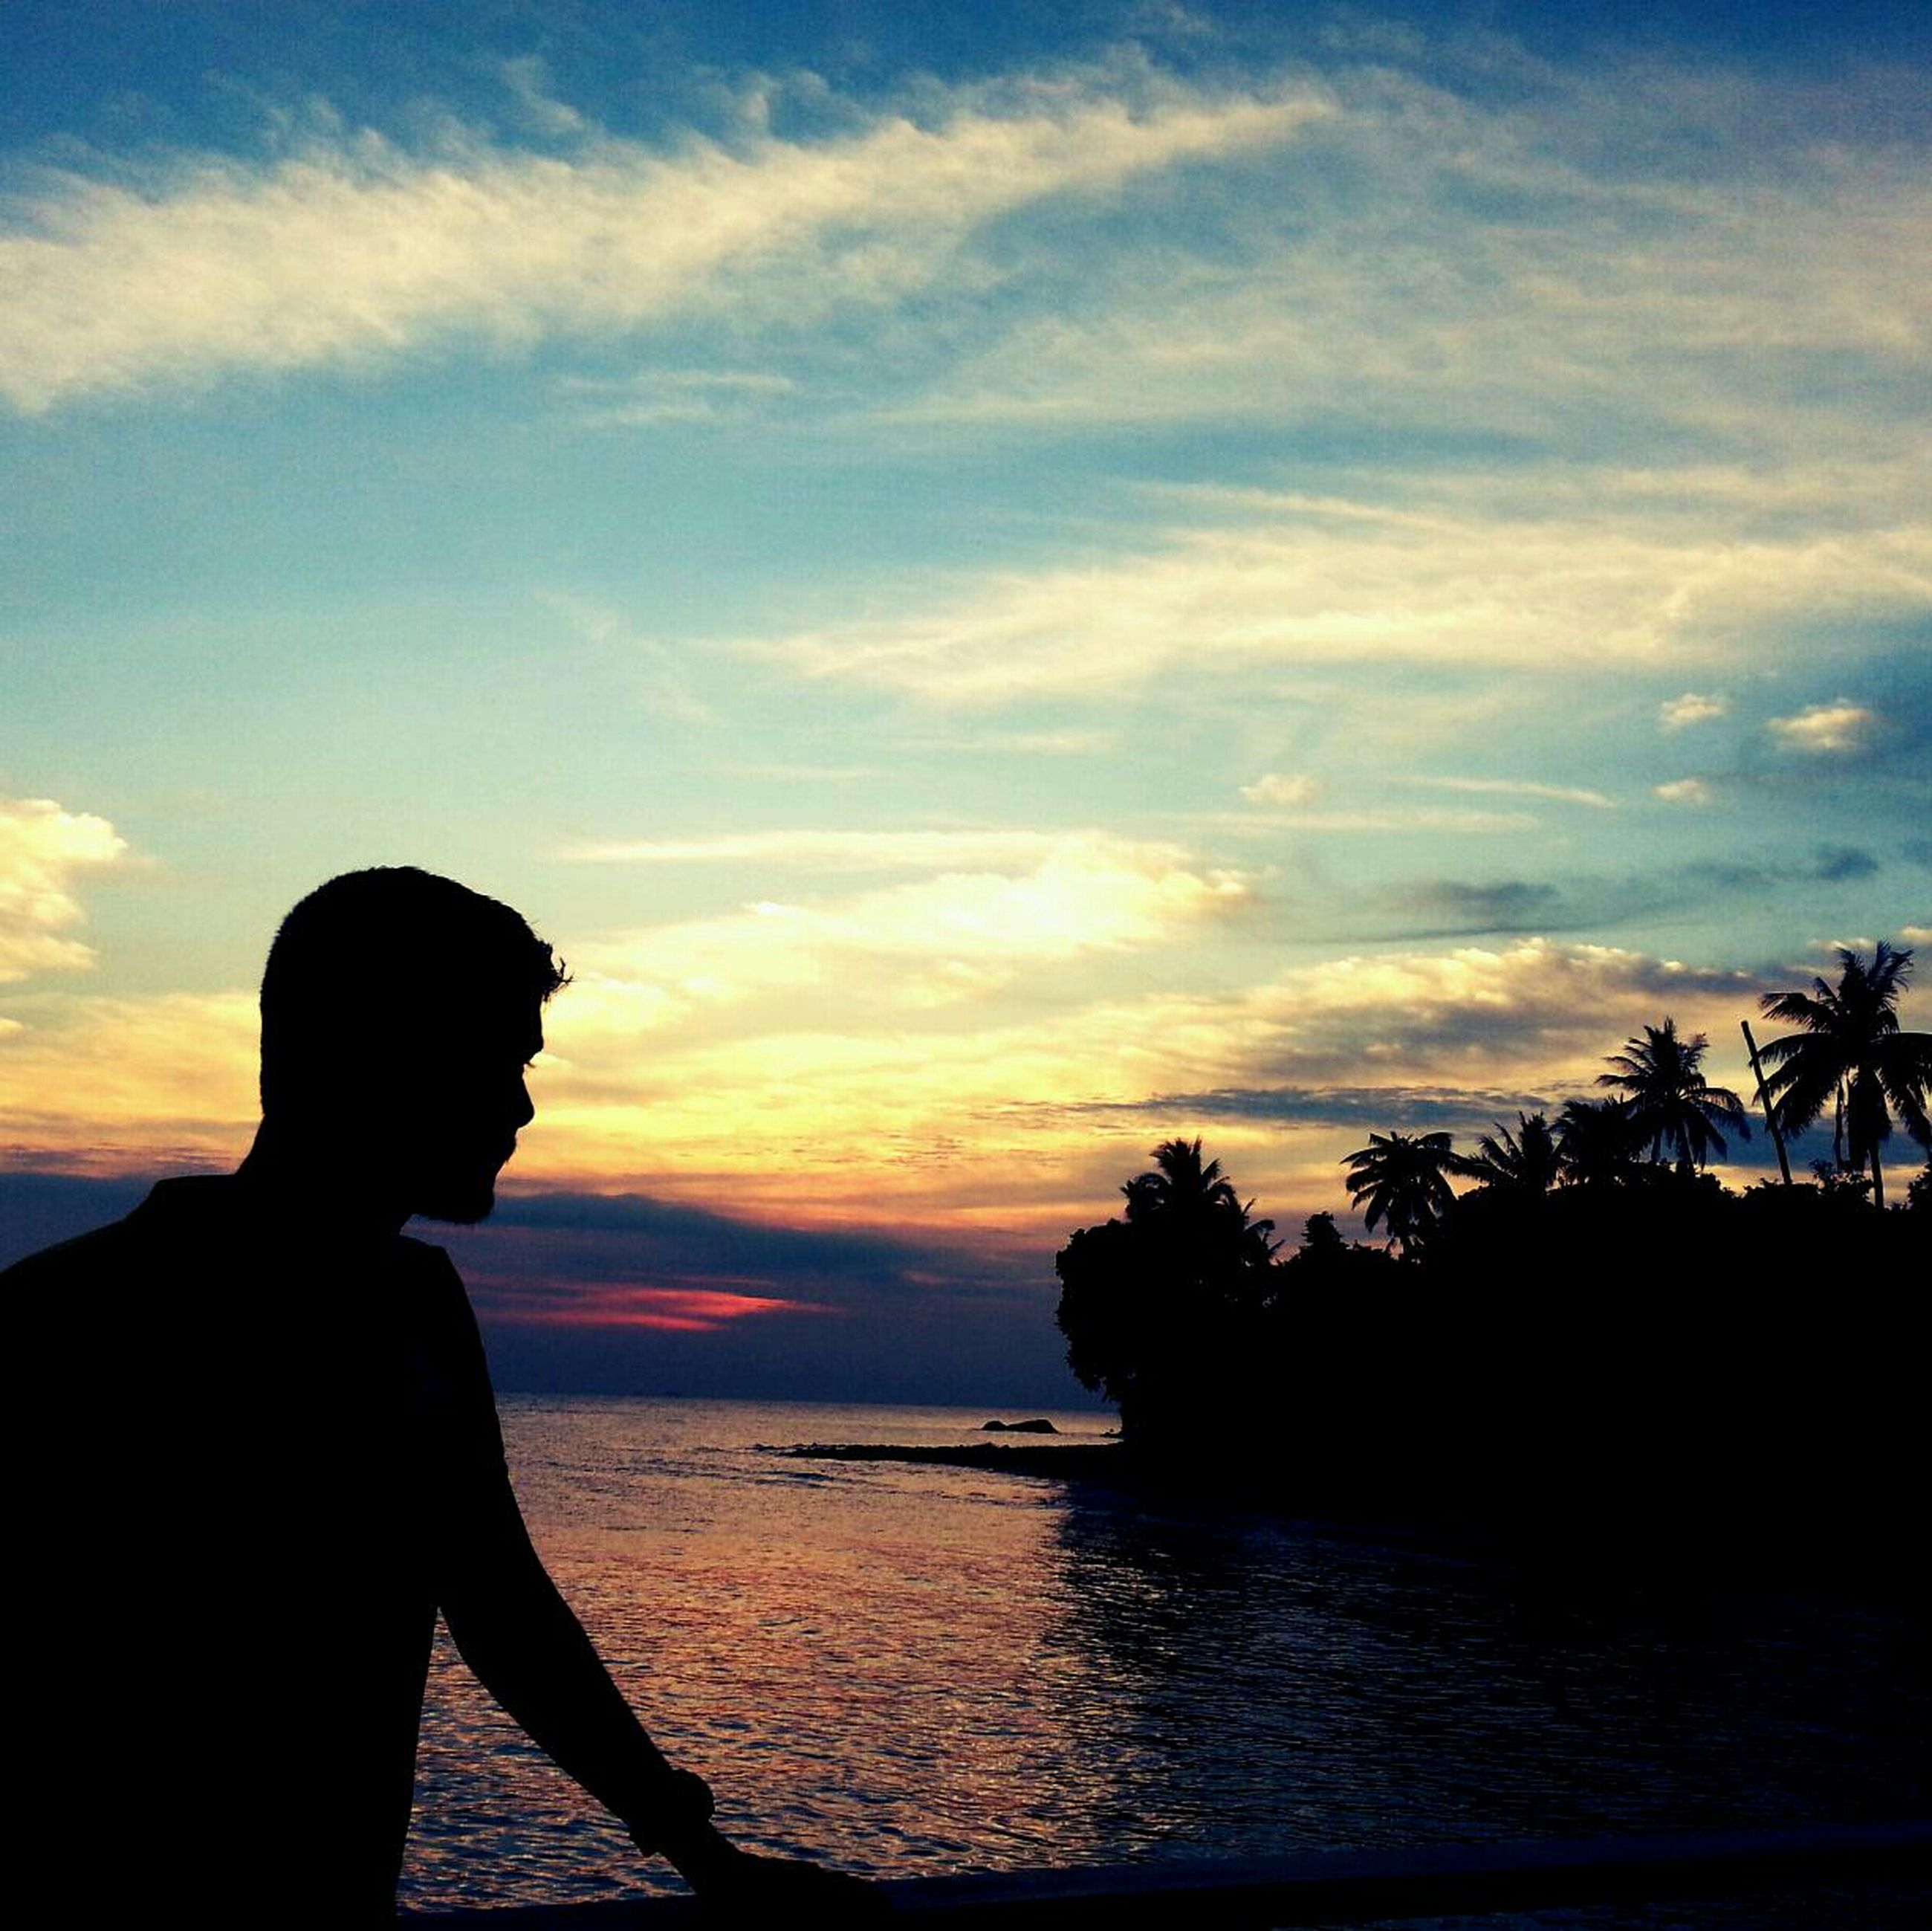 sunset, silhouette, water, sea, sky, scenics, beauty in nature, horizon over water, lifestyles, tranquility, tranquil scene, leisure activity, standing, nature, idyllic, cloud - sky, orange color, men